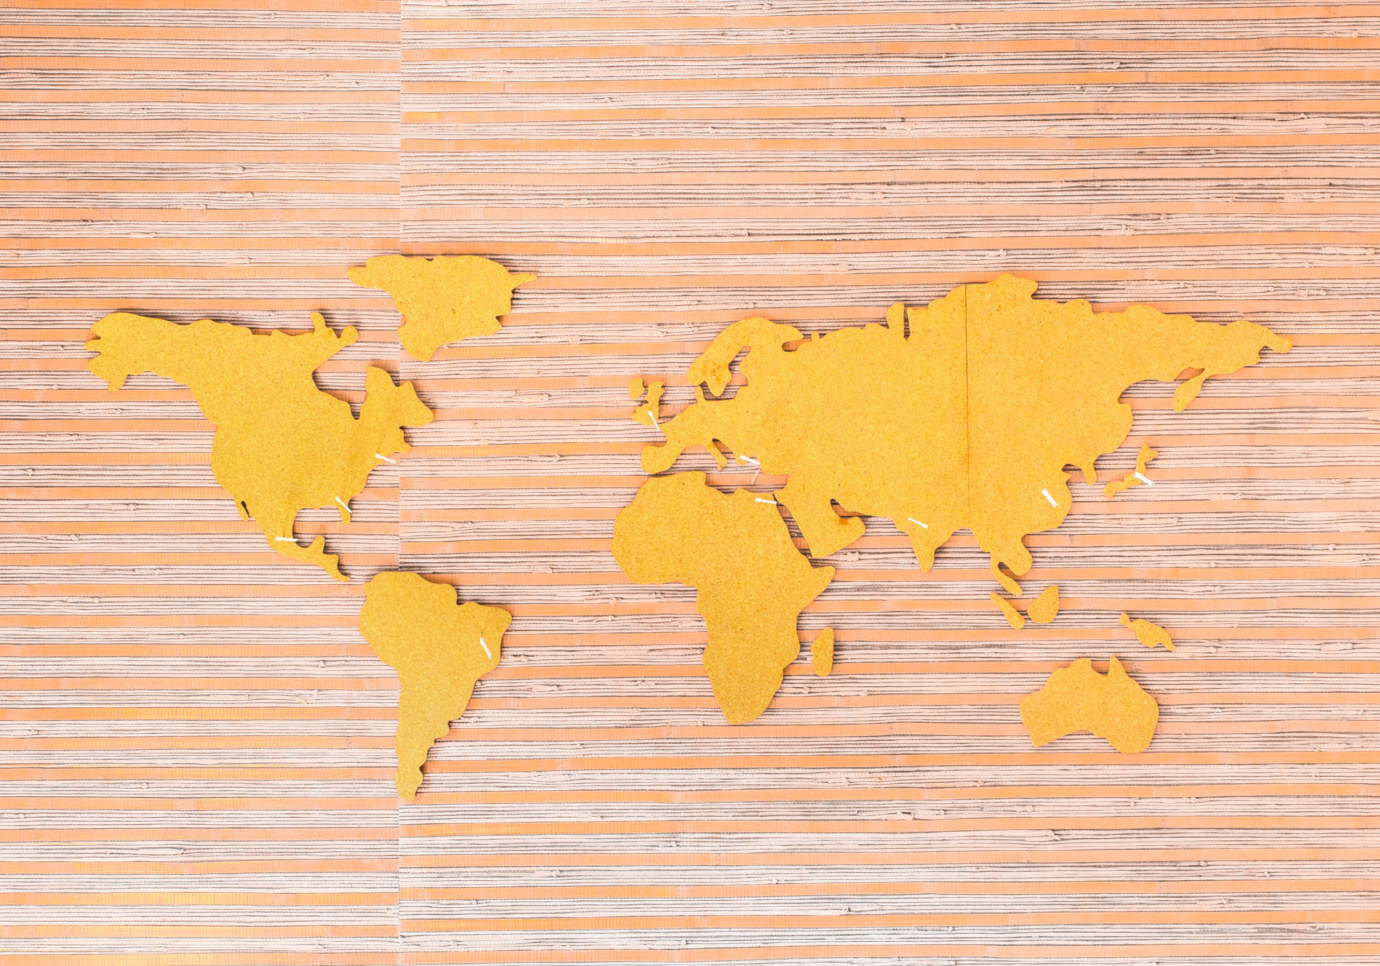 Can I travel to (insert country) - map of the world